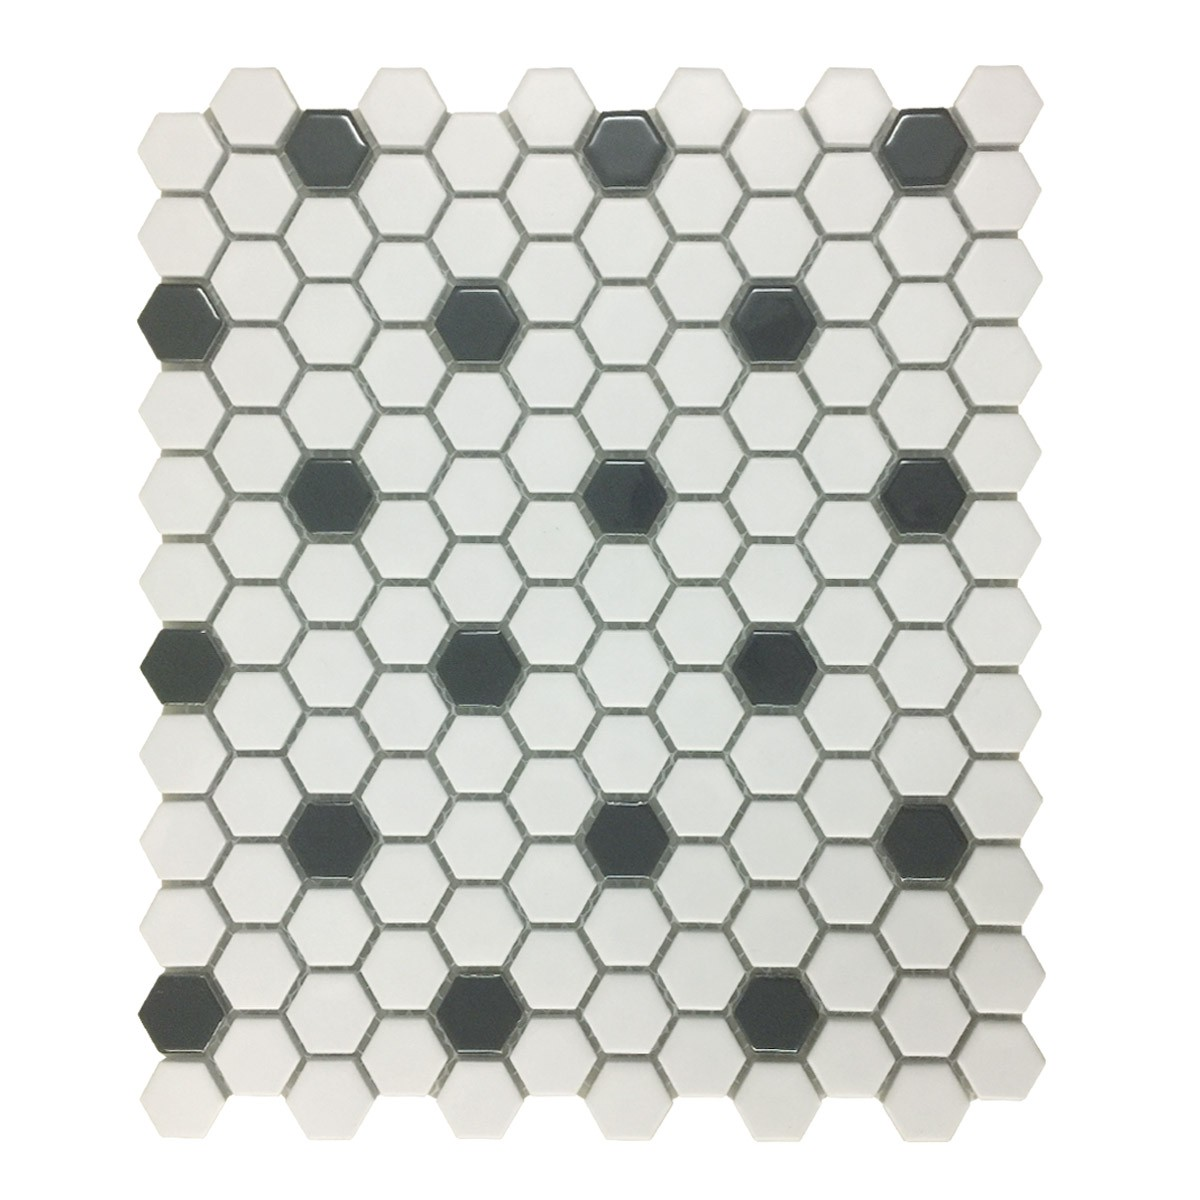 "Mosaic Hexagon Matte White and Black Tile 23 Sheets 10.25"" x 11.8"" 19.3 SQFT"